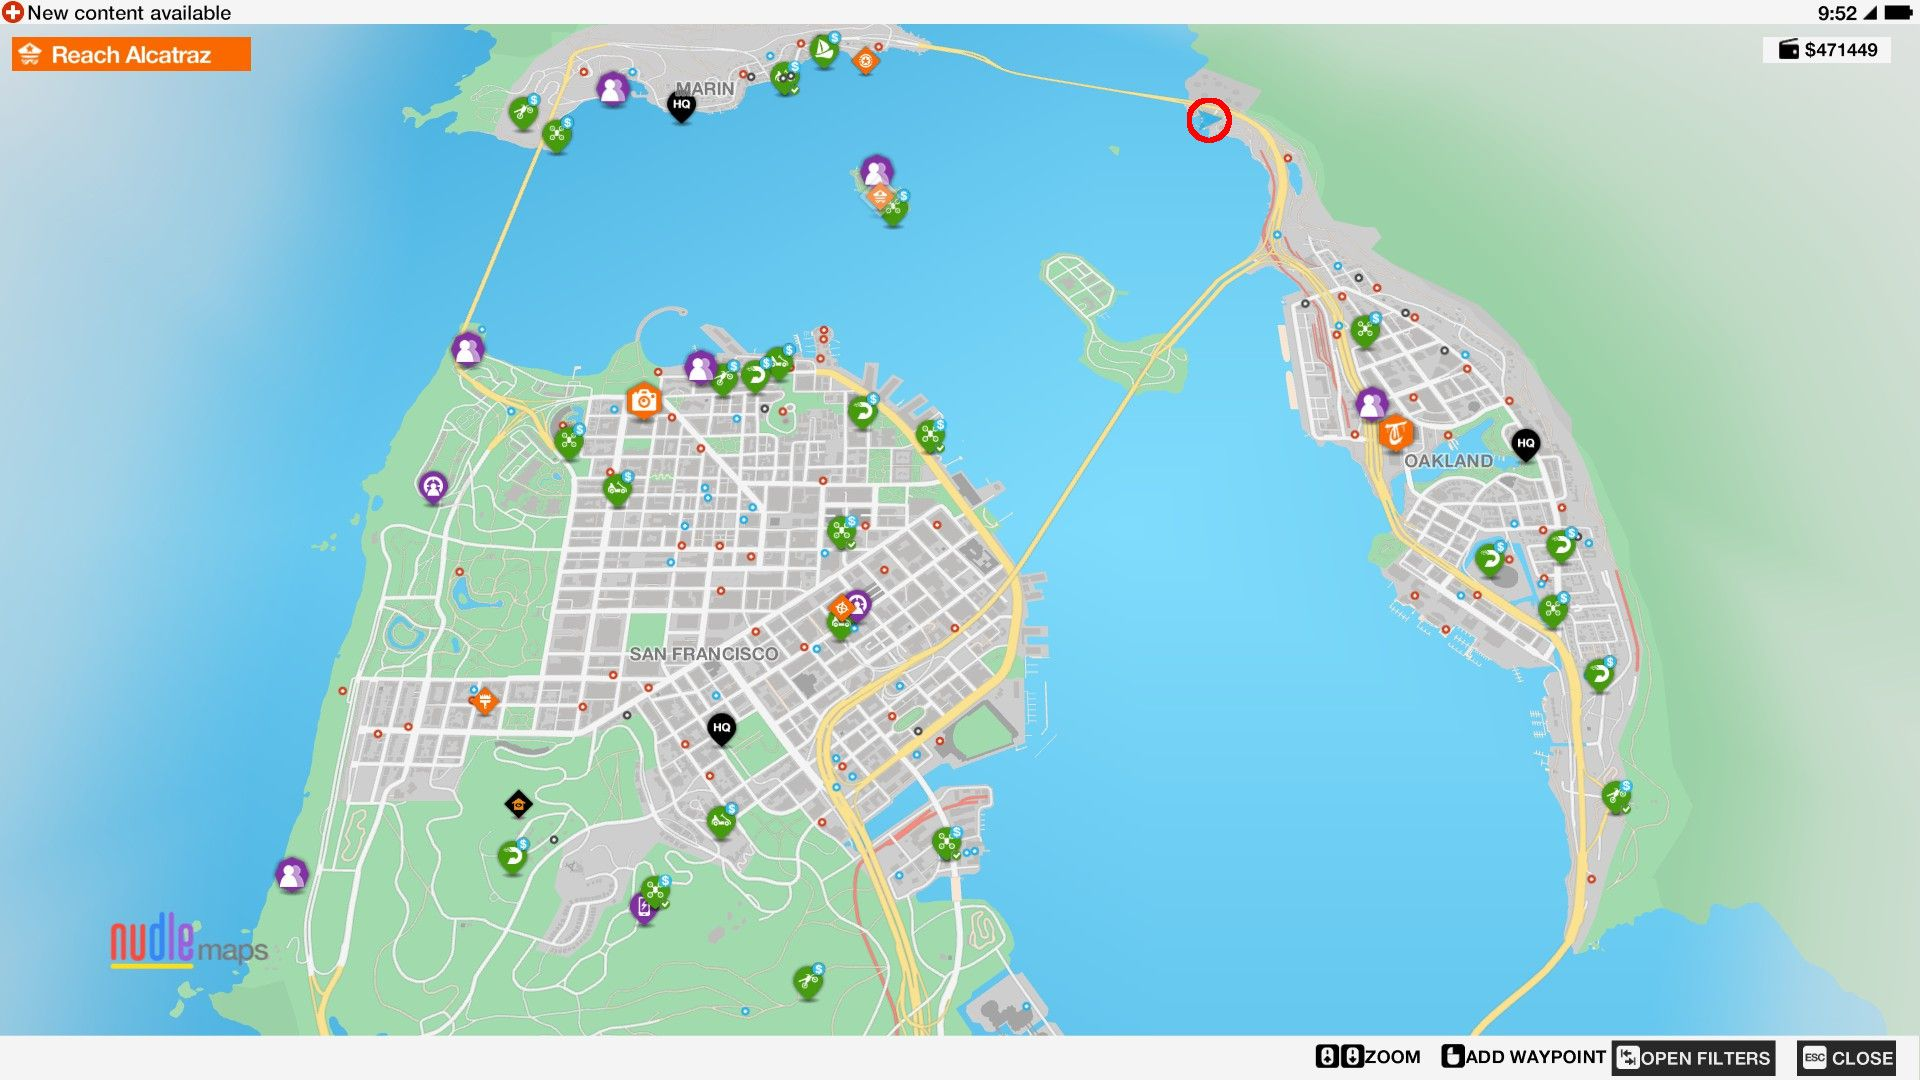 watch dogs 2 map